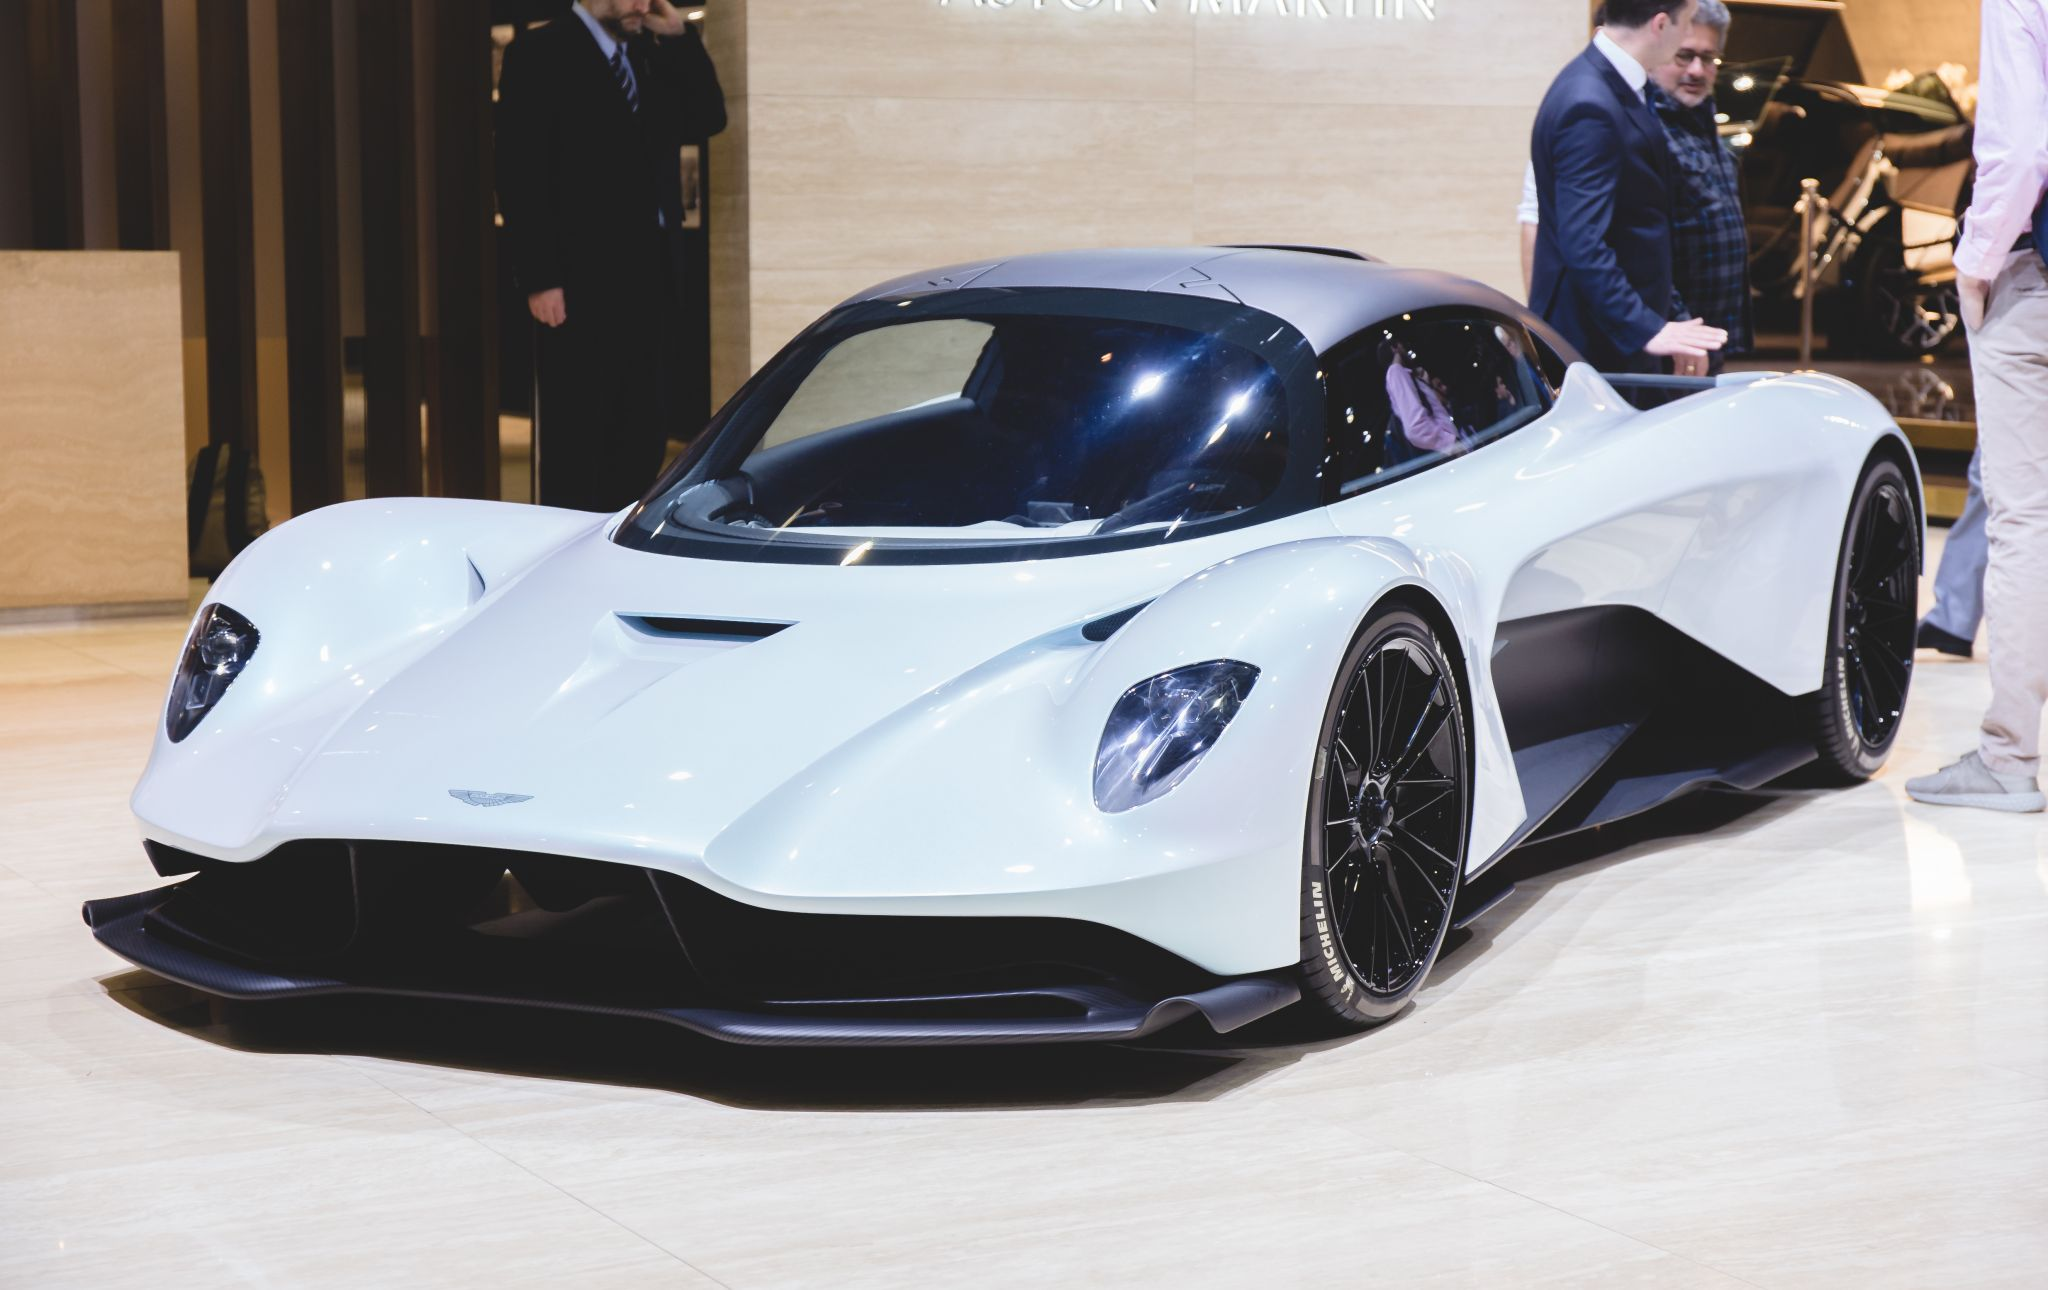 The 10 Most Expensive James Bond Cars Not Counting The